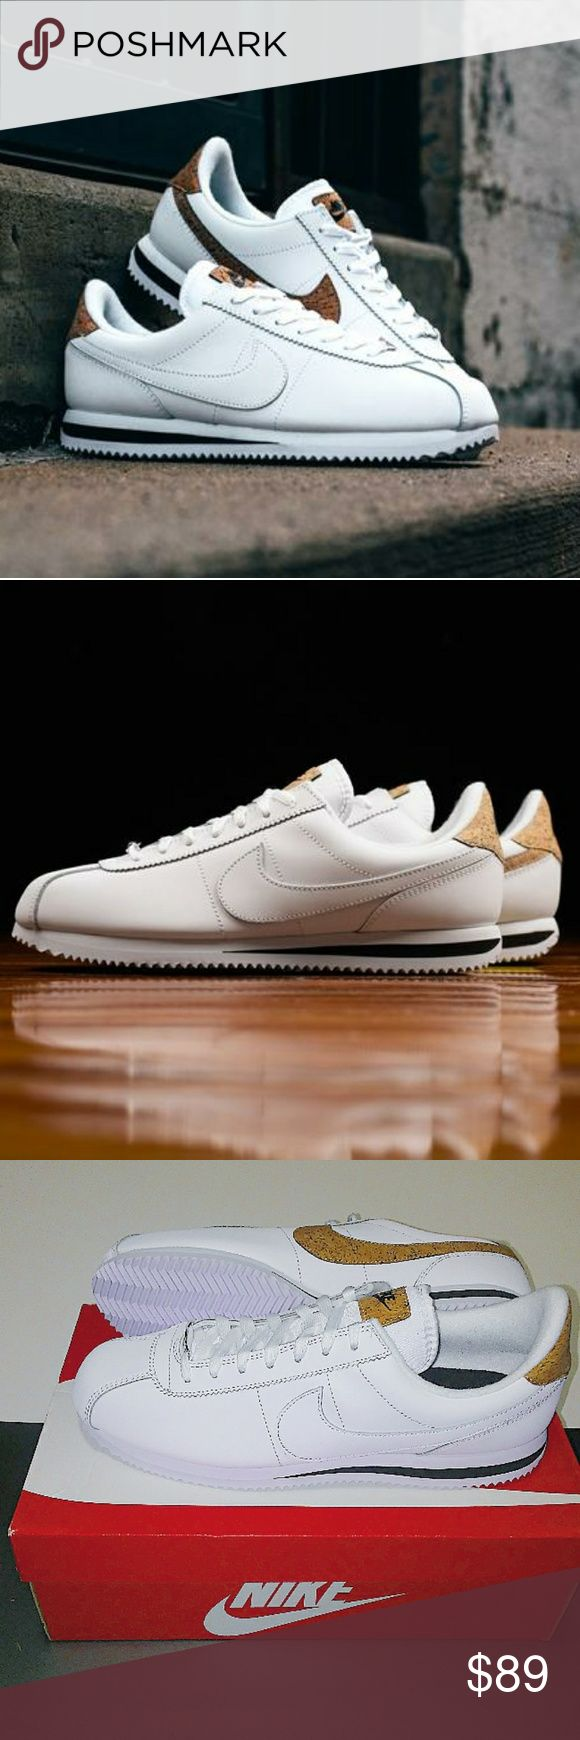 Men's Nike Cortez Leather Premium (Size 13) Brand new in box 100% authentic Excellent condition Size 13 Men White /Cork color way Ships doubled boxed Secured packaging Same day/Next day shipping nike Shoes Sneakers